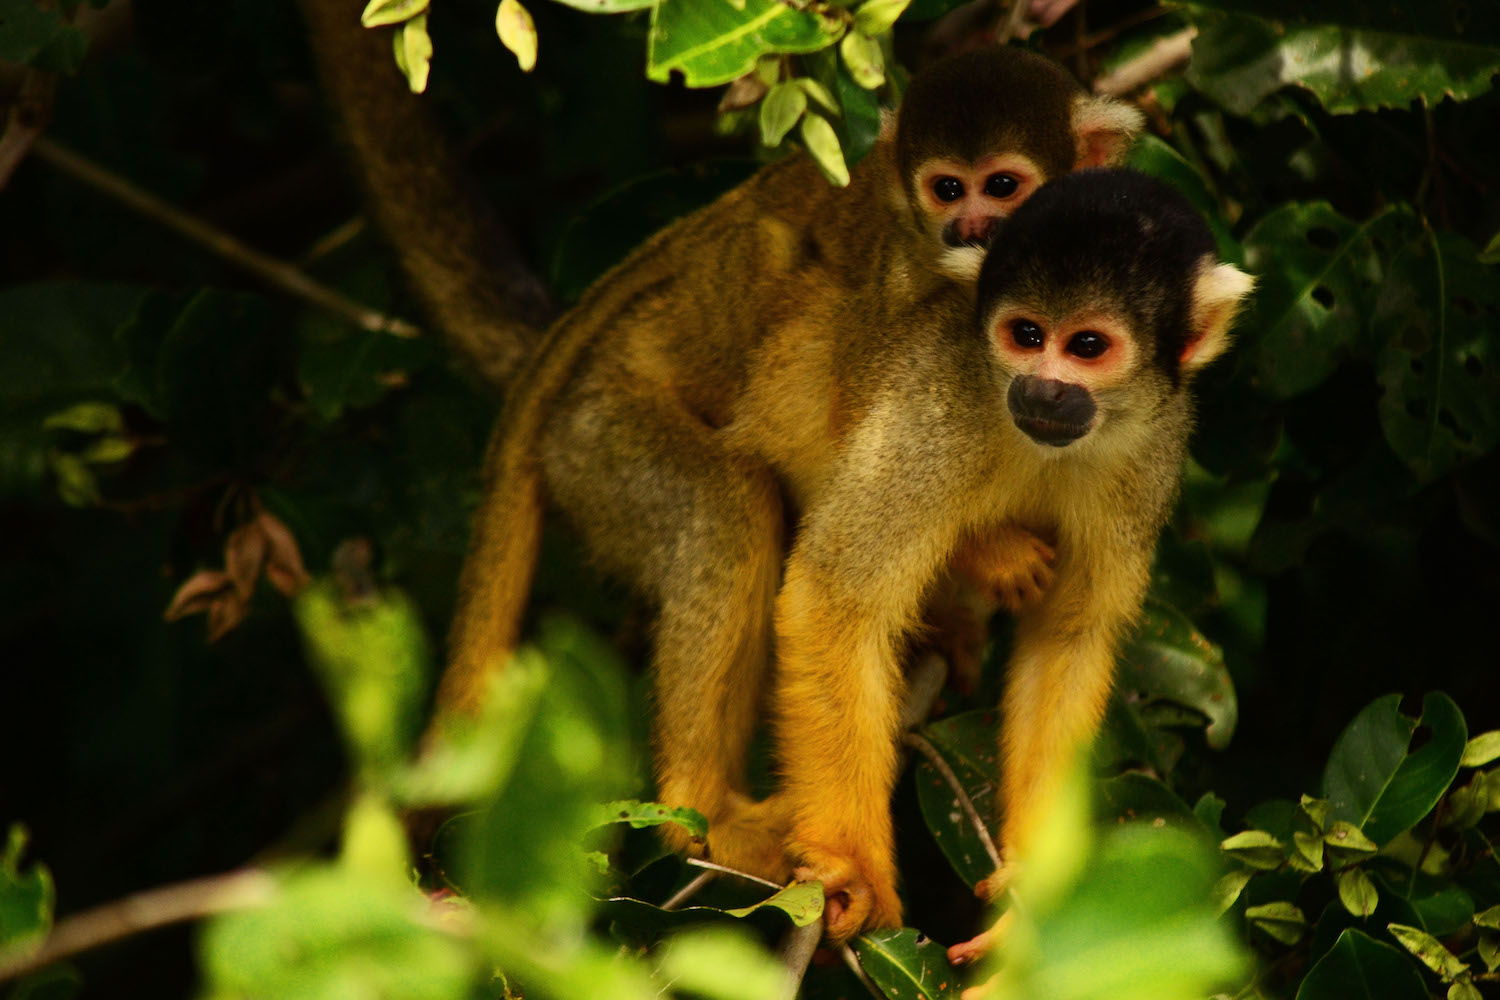 Clack-capped squirrel monkey and baby in the forests of San Buenaventura. Photo by Eduardo Franco Berton